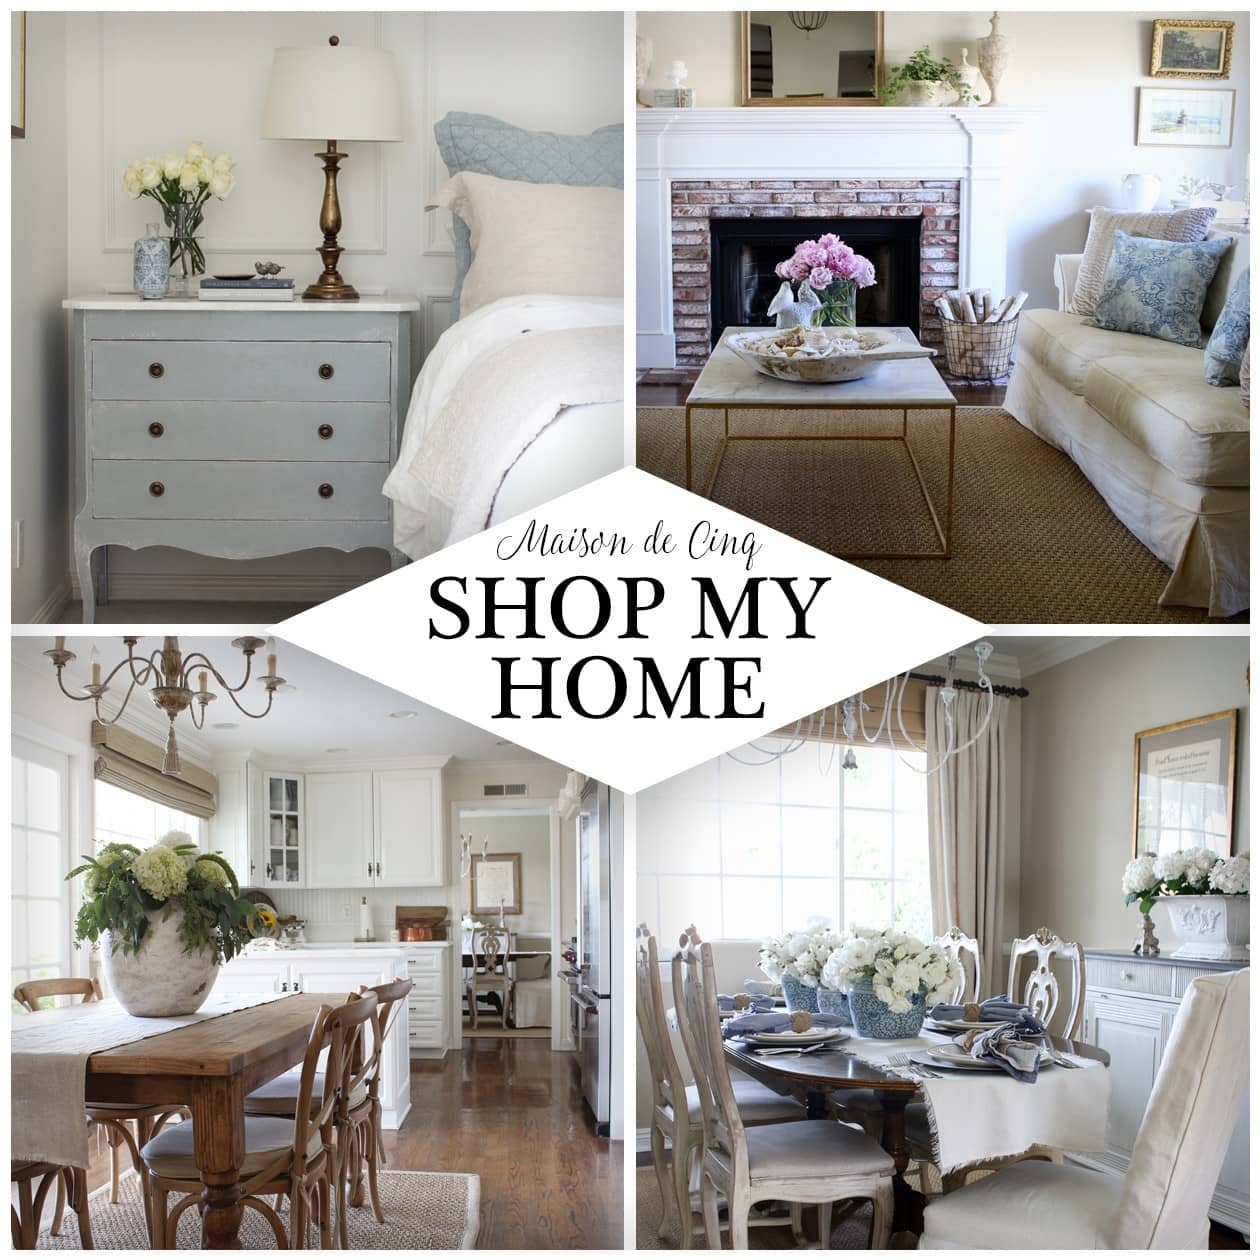 Shop My Home link